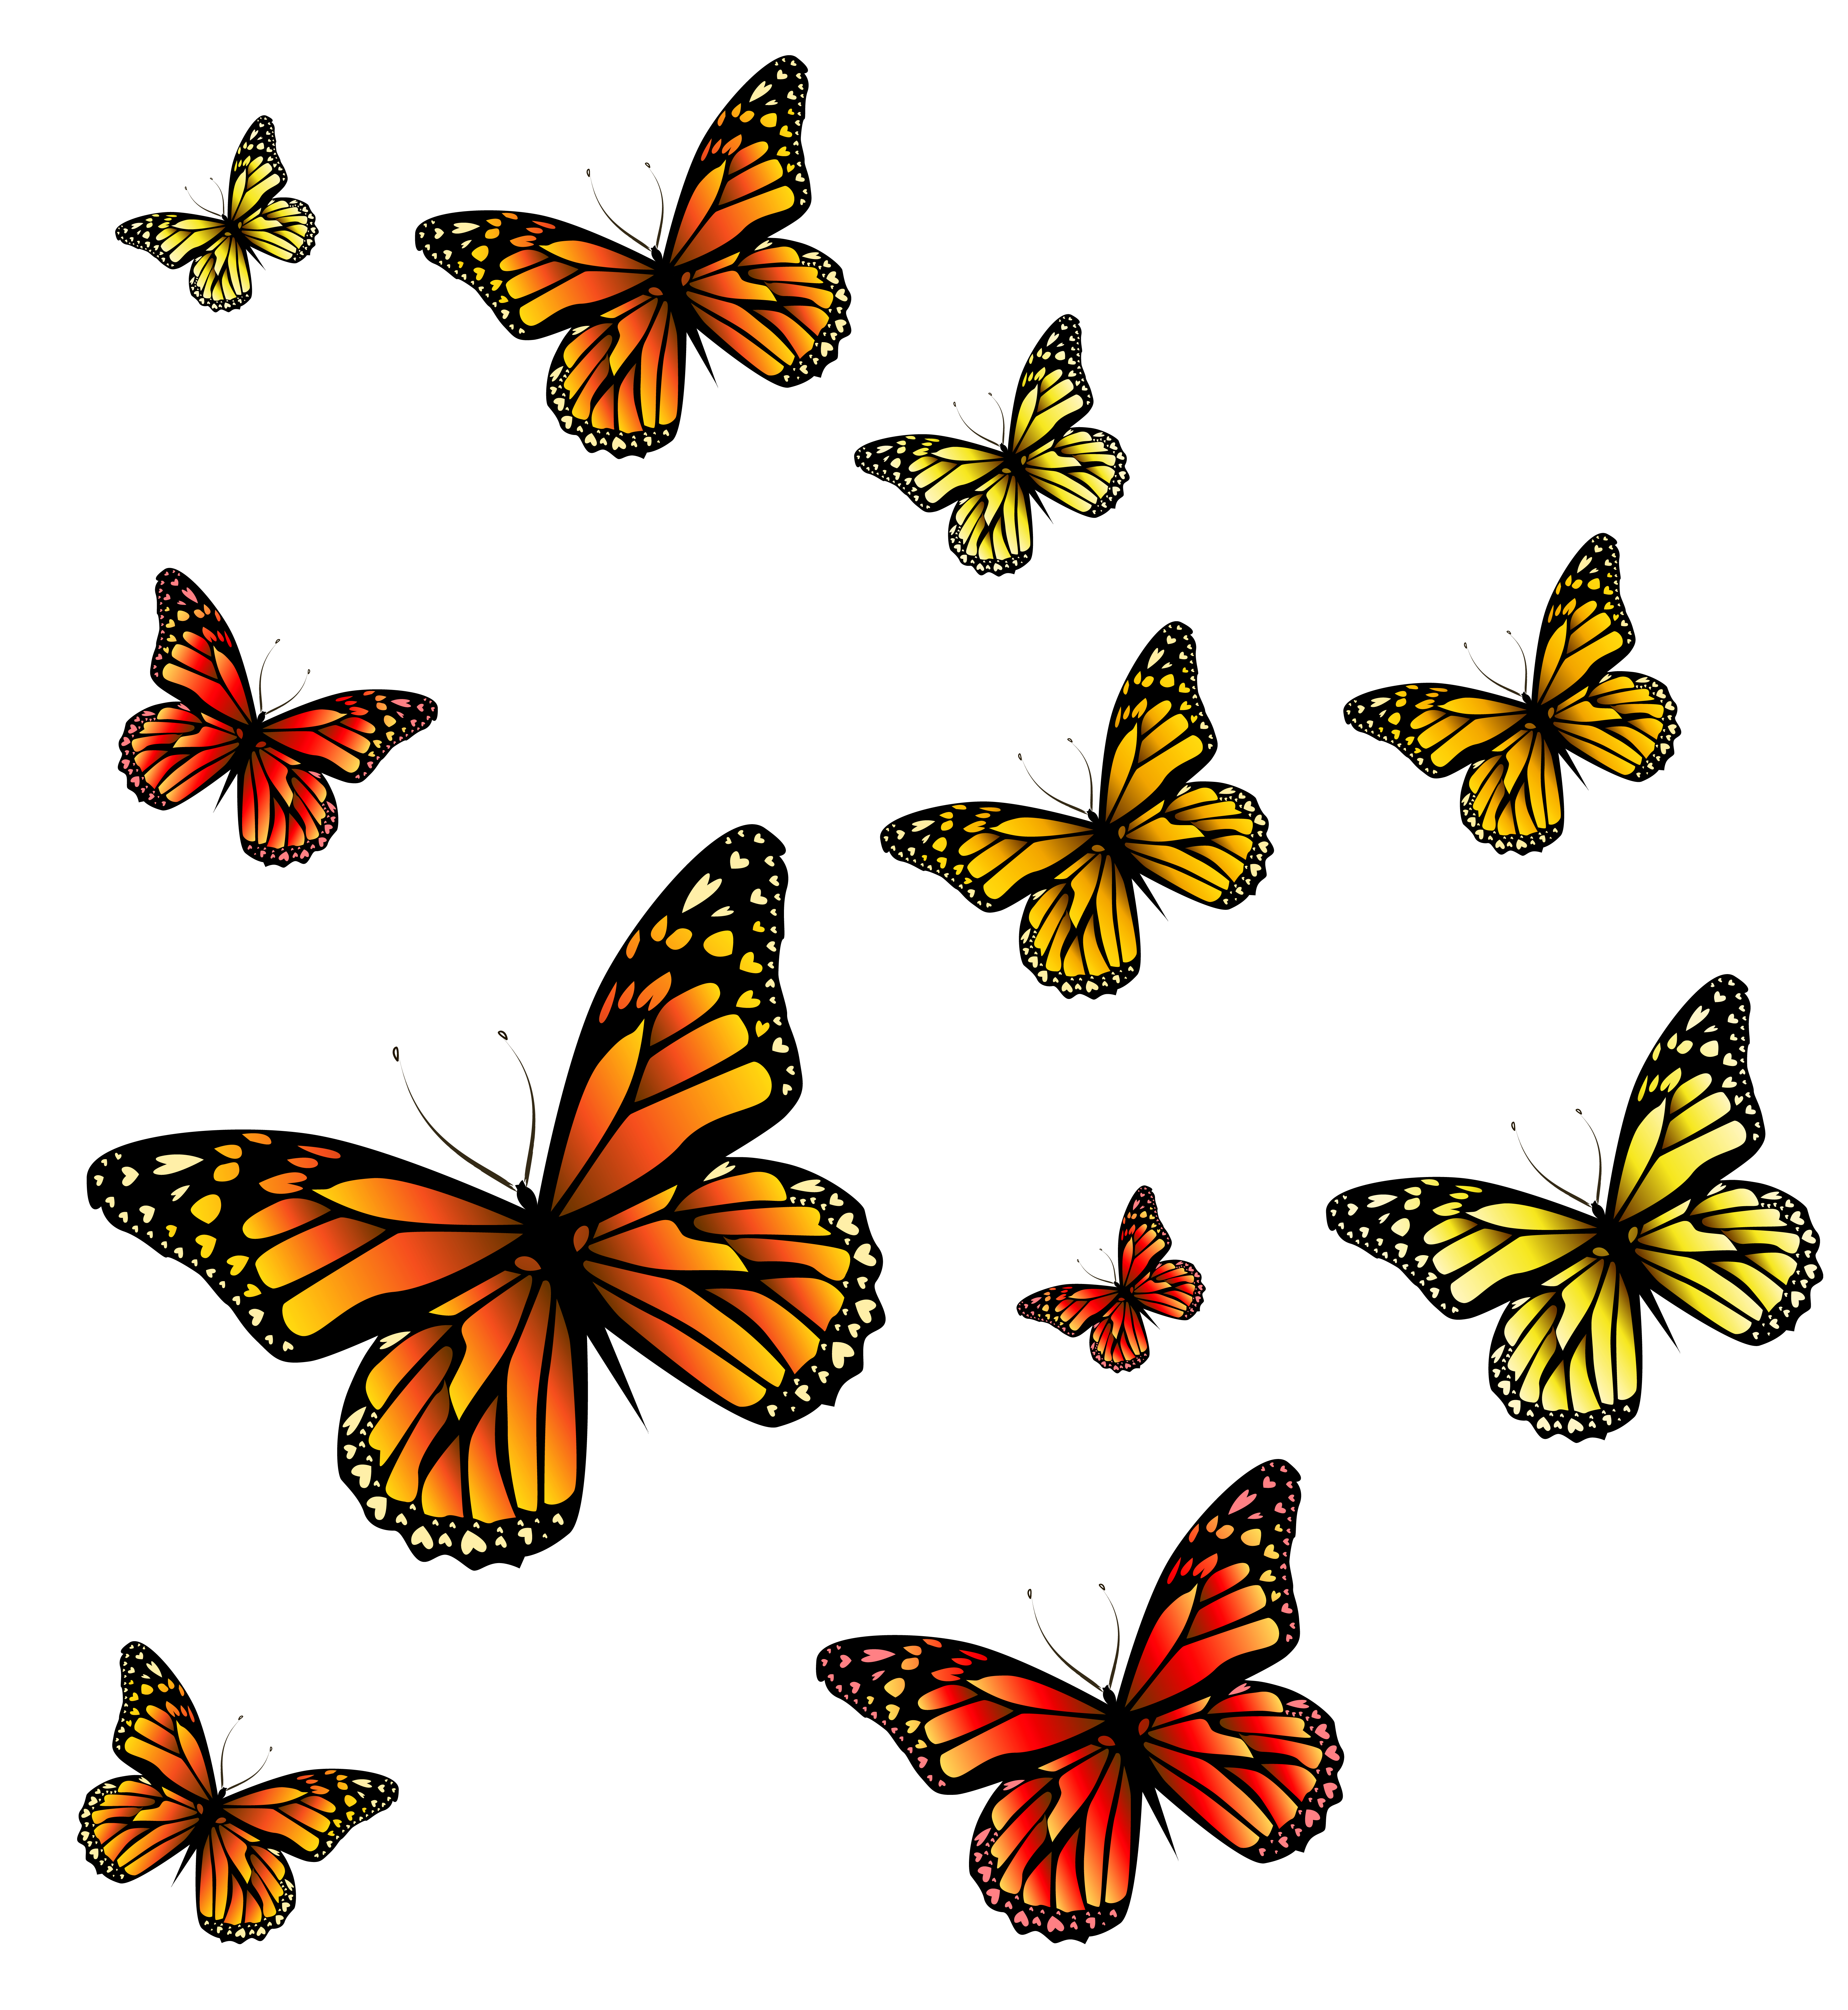 Png butterflies. Image gallery yopriceville high